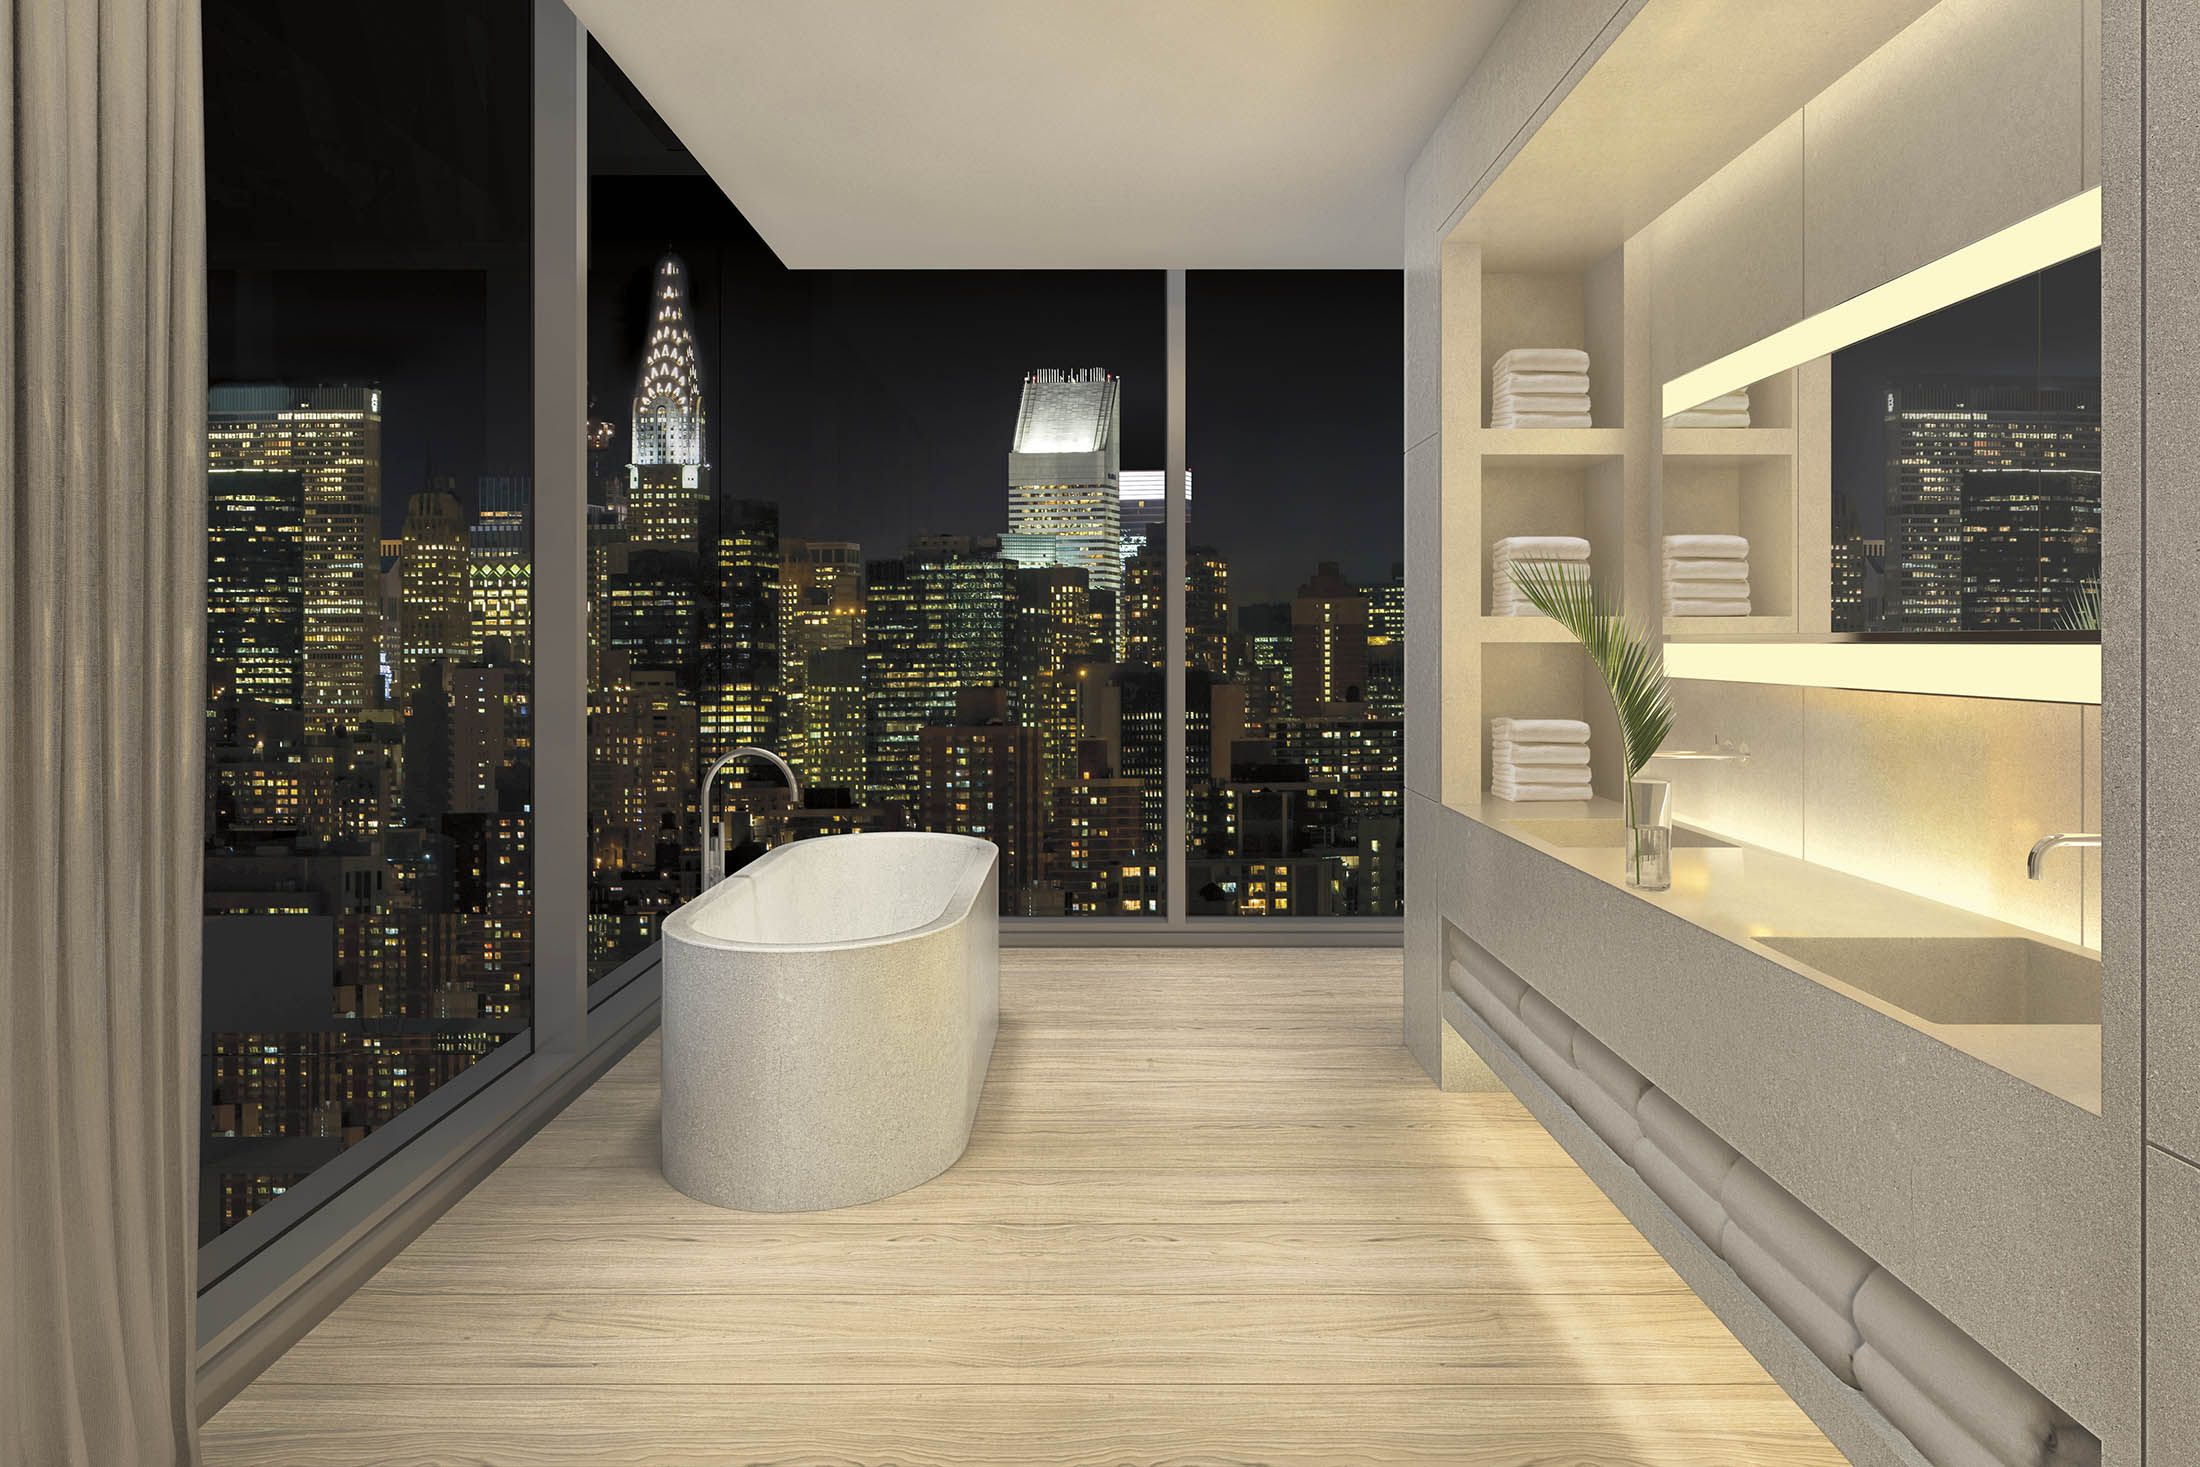 The Latest Must Have Trend In Luxury Real Estate Is Bathrooms